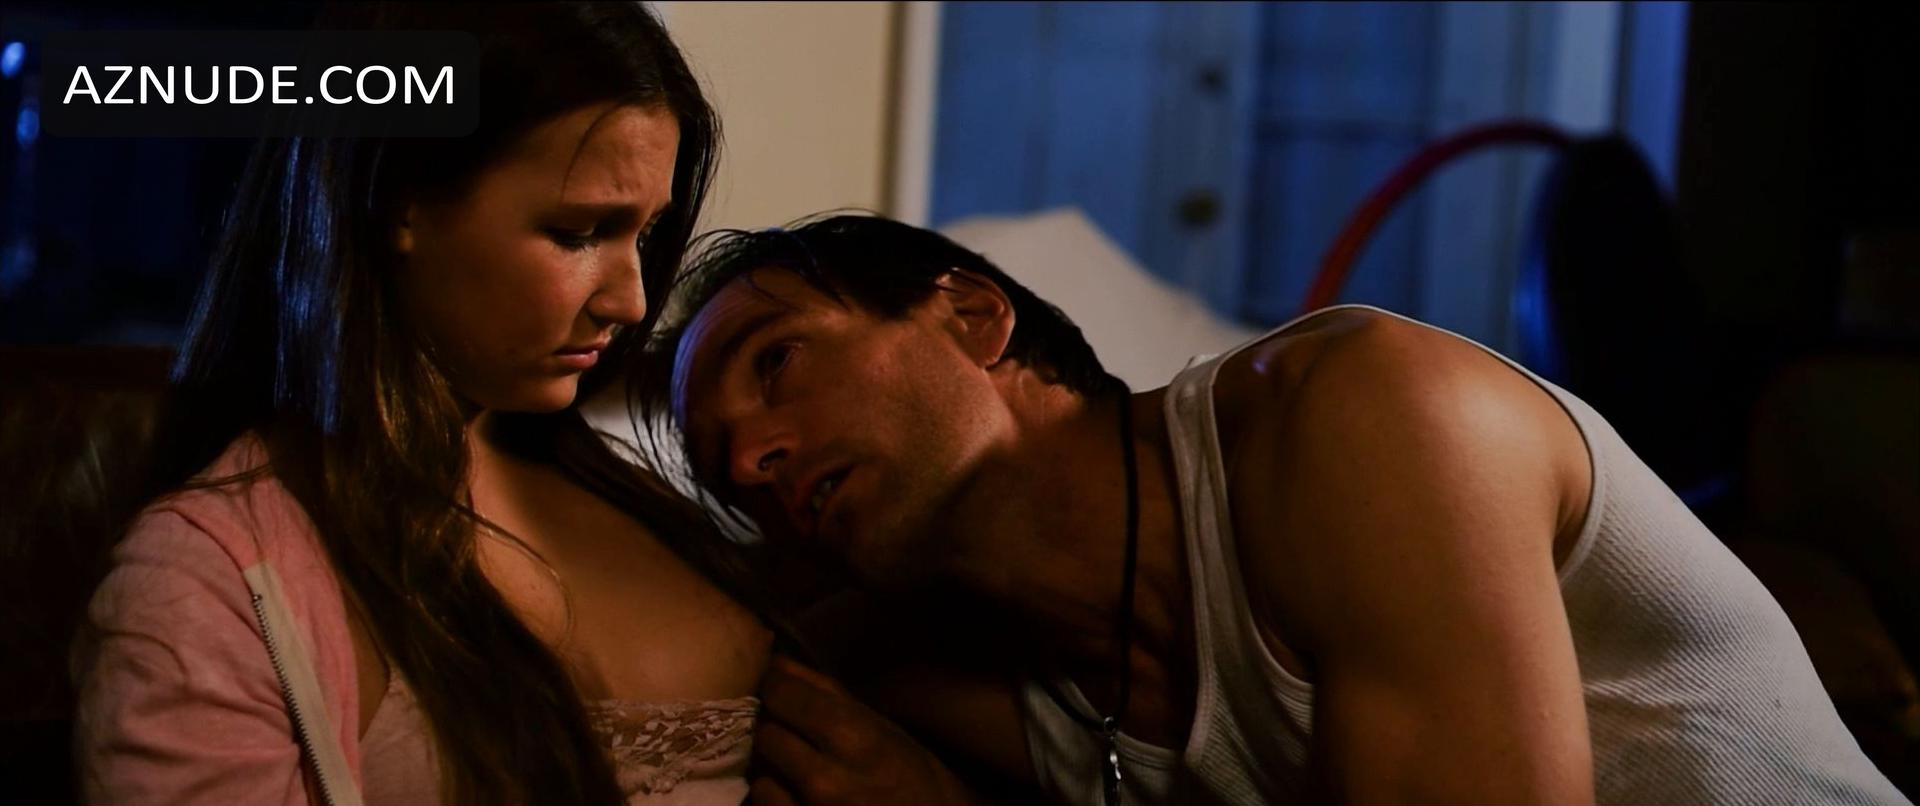 Jessica taylor haid nude sex scene in girl lost nude (55 photos), Is a cute Celebrites foto